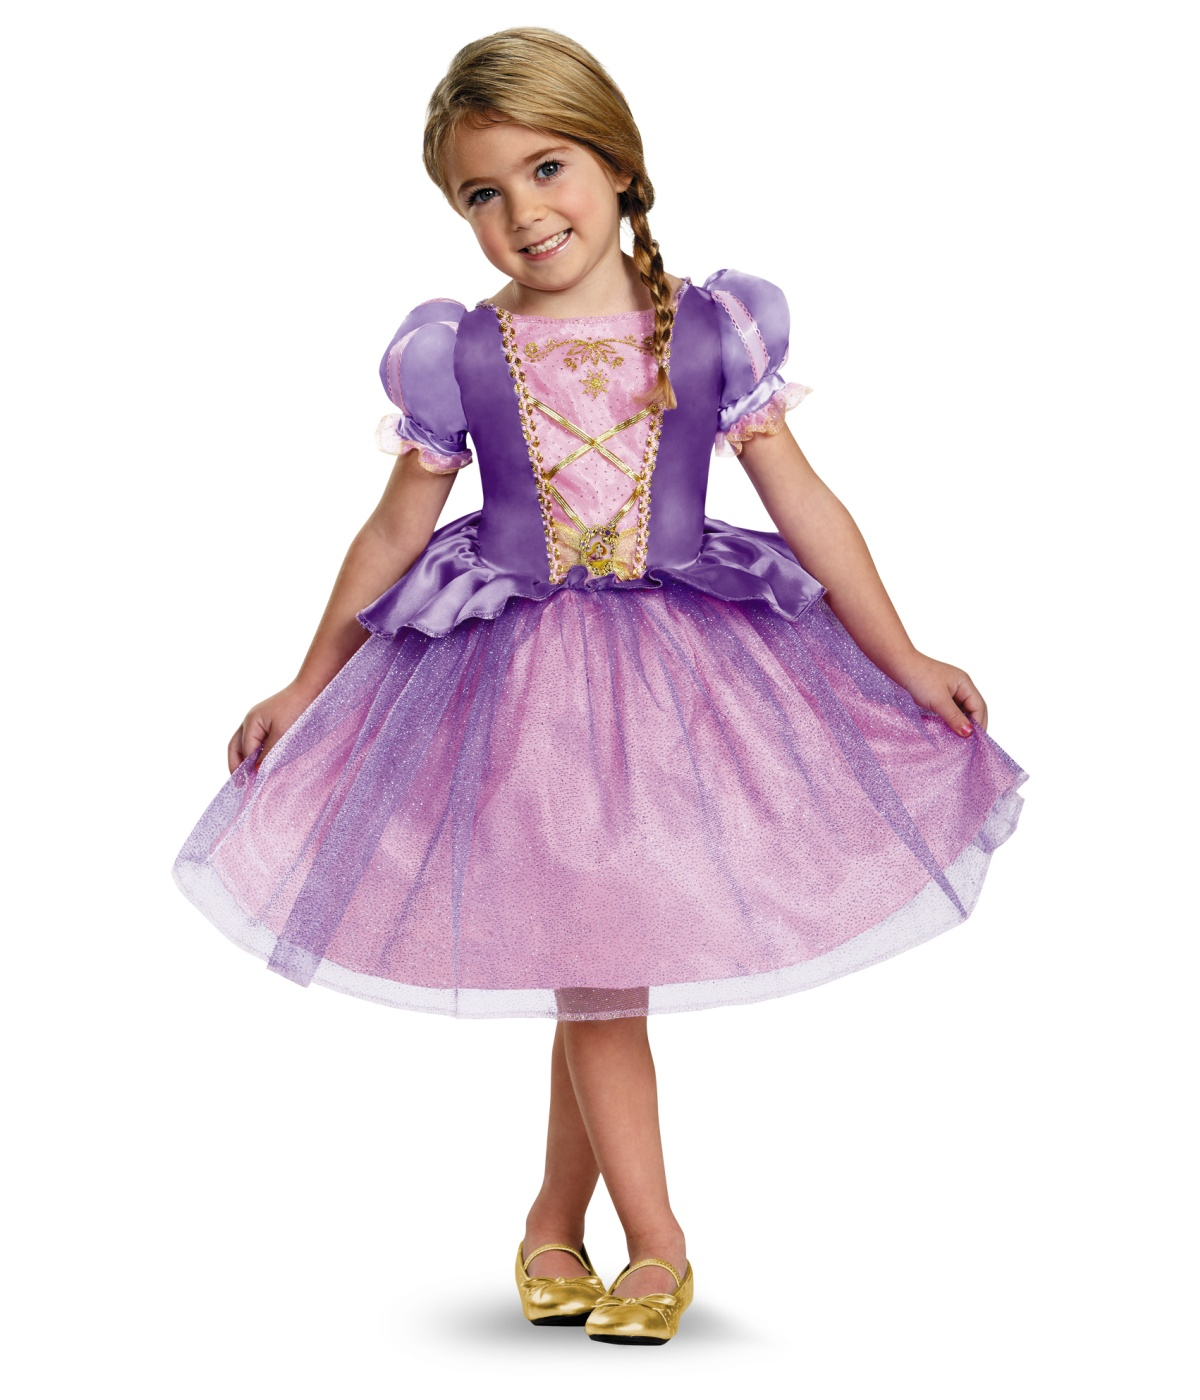 sc 1 st  Wonder Costumes & Disney Rapunzel Girls Classic Dress Costume - Princess Costumes